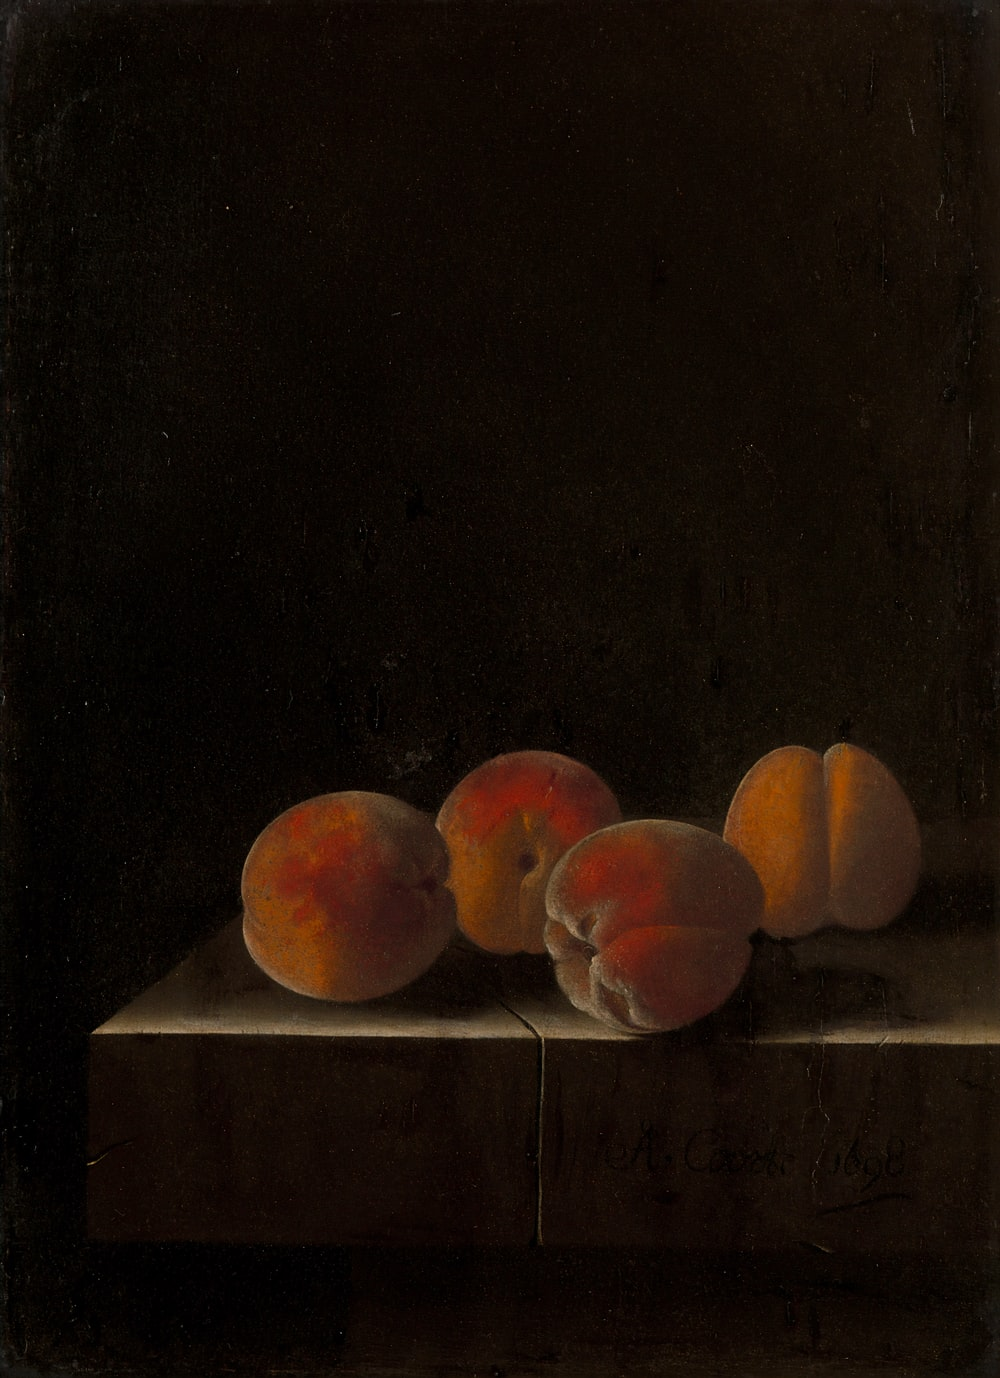 orange fruits on white wooden table